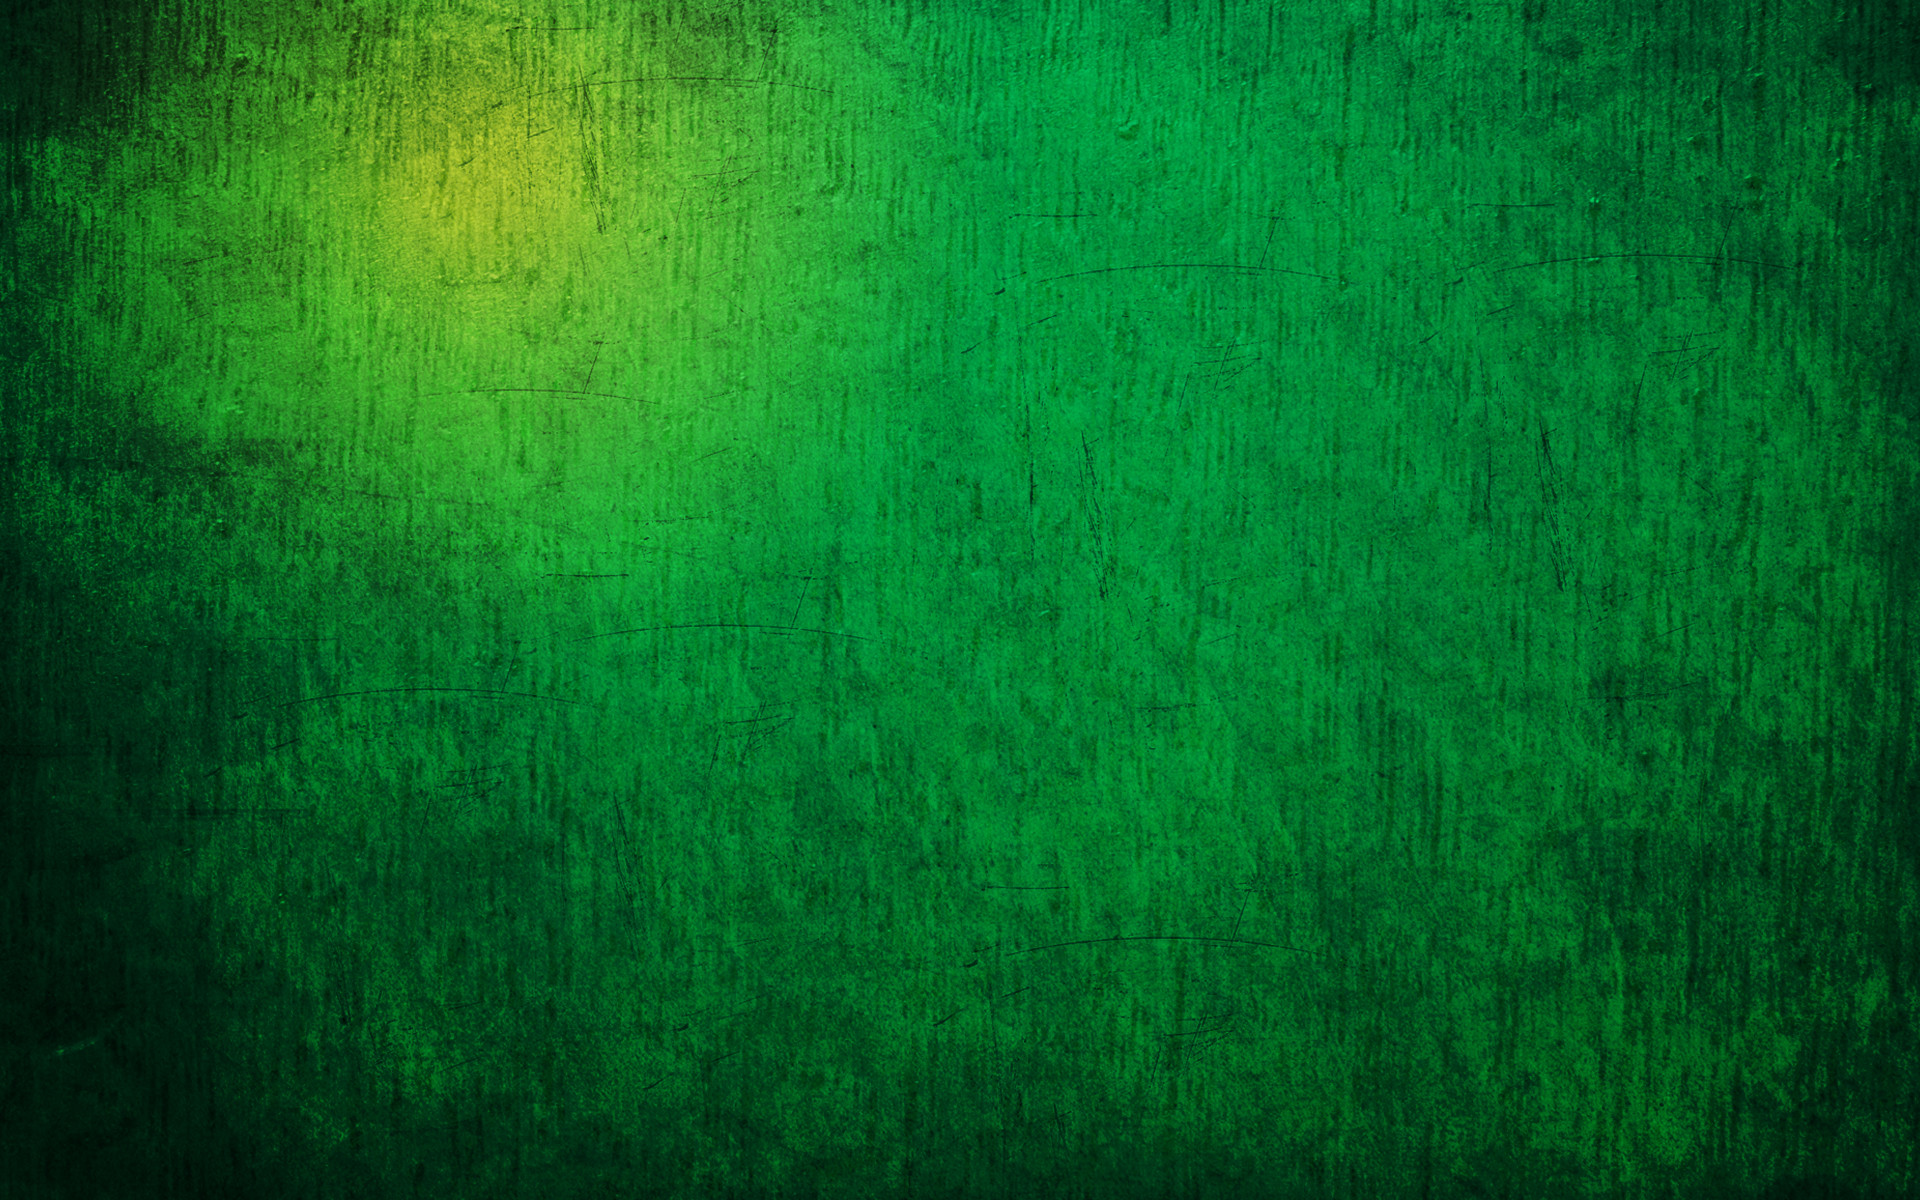 1920x1200 Green Background 21869